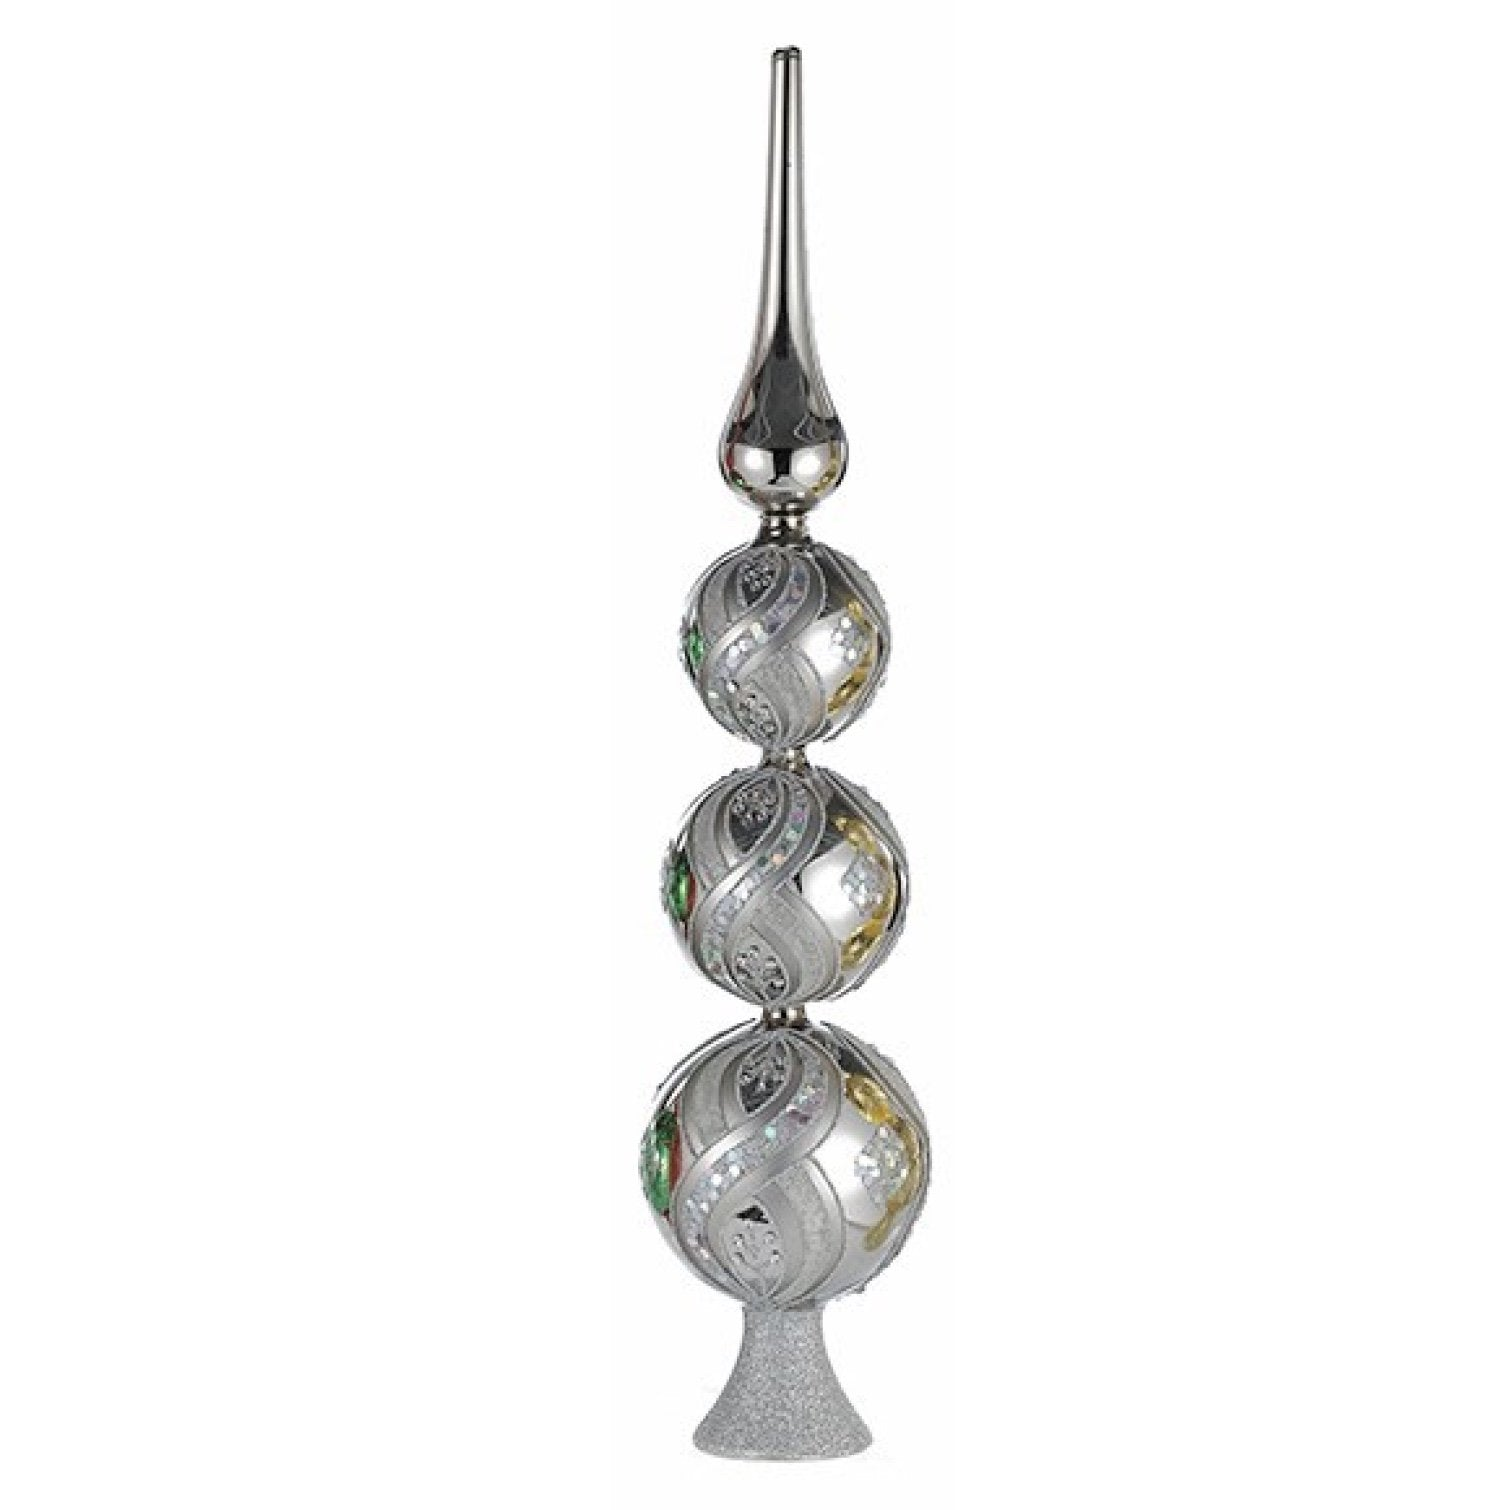 Kurt Adler Glass Finial Tree Topper Silver | Putti Christmas